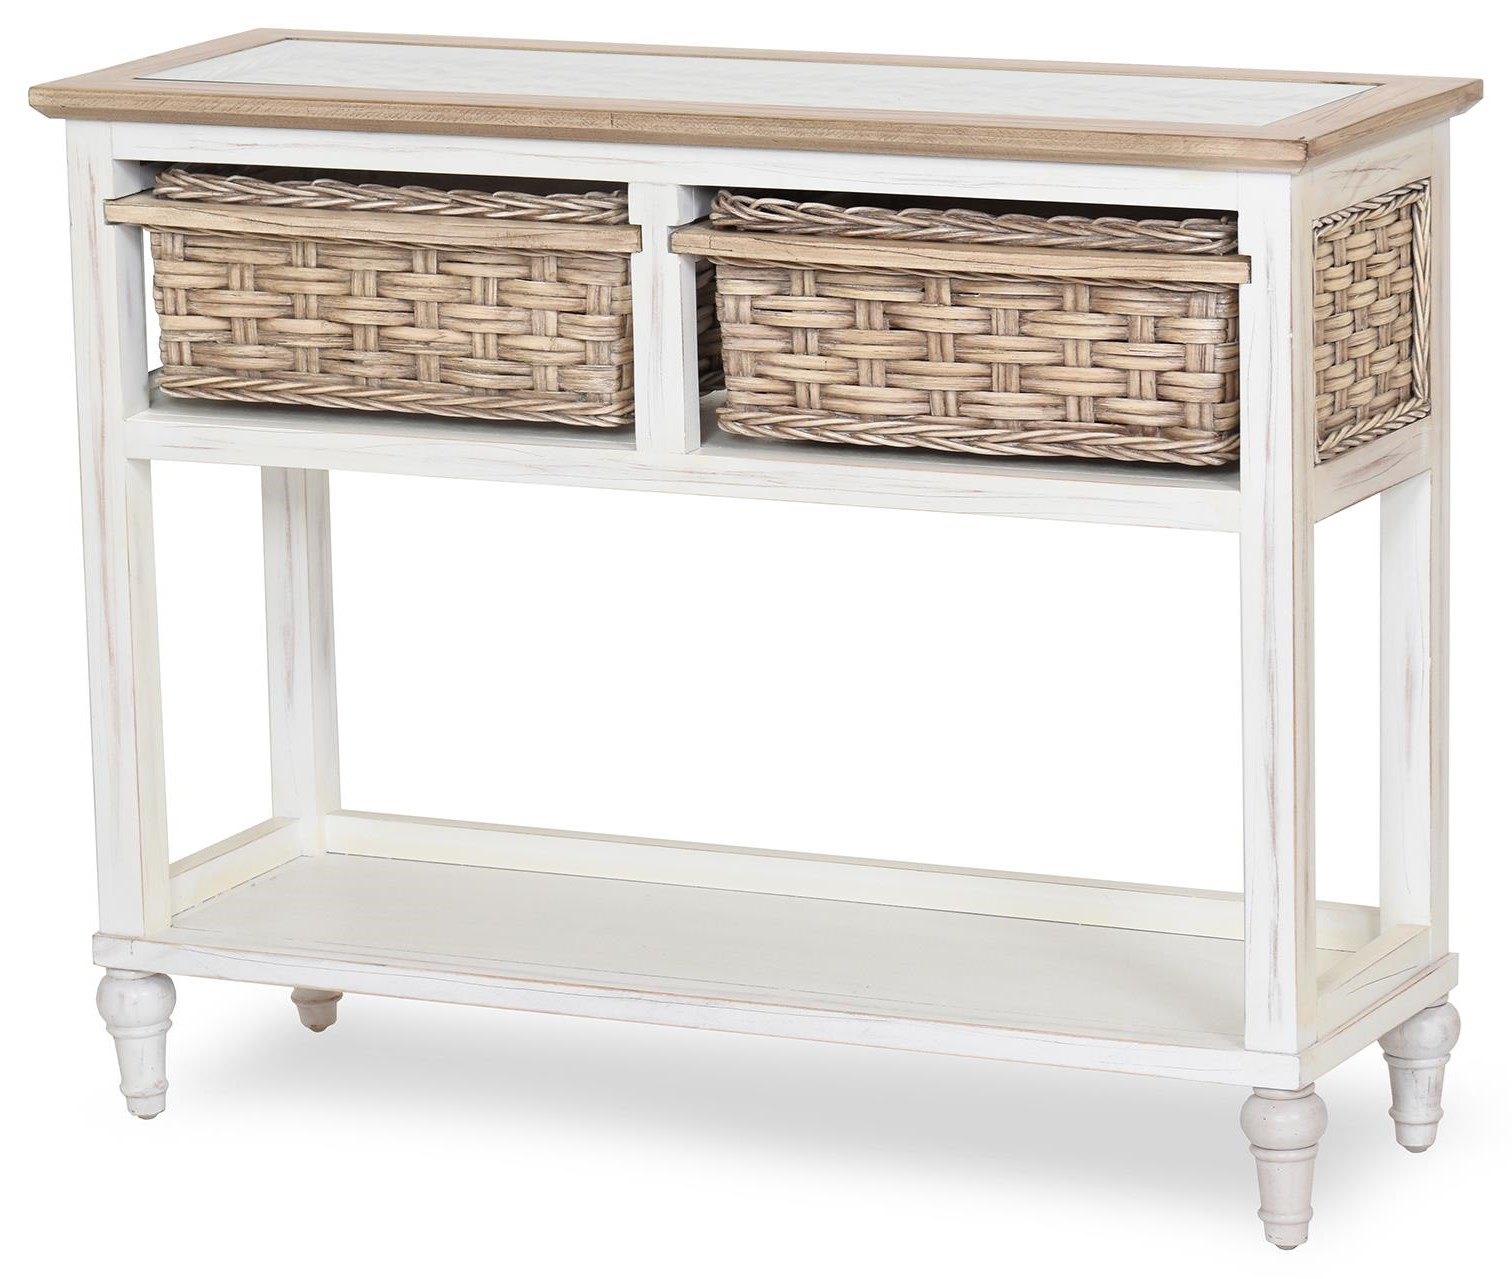 island breeze console table by Sea Winds Trading Company at Johnny Janosik